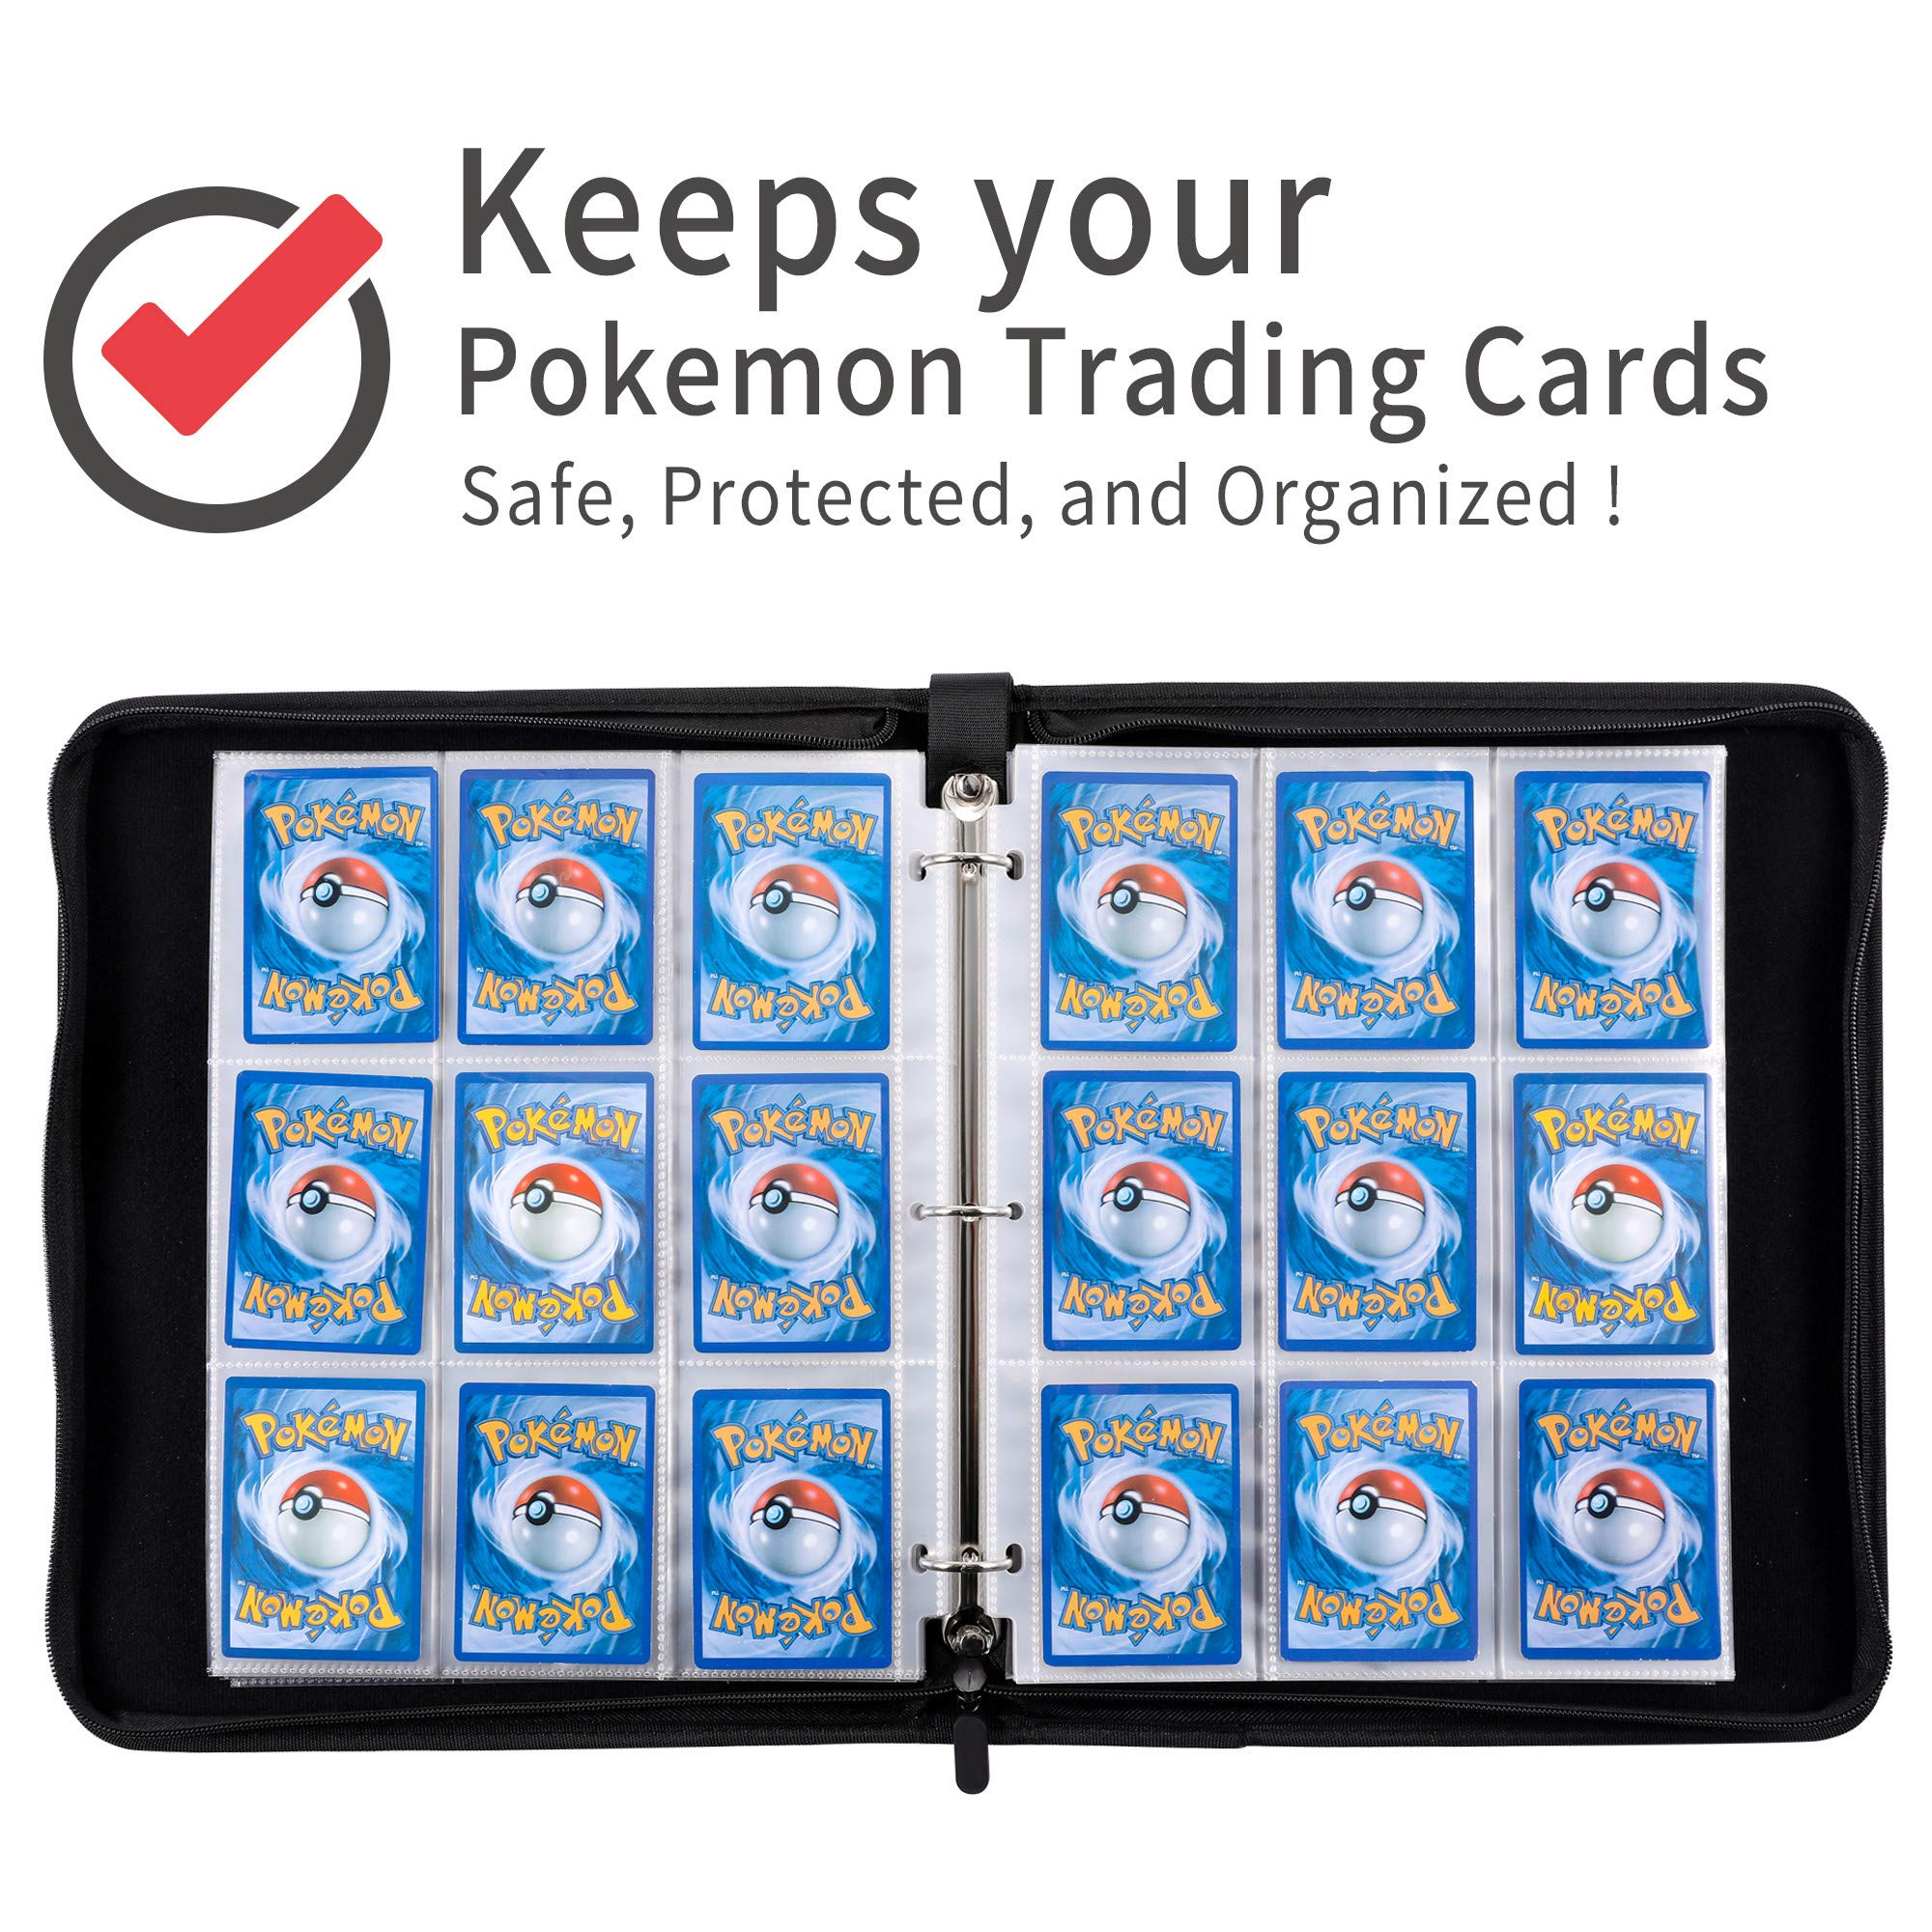 D DACCKIT Carrying Case Compatible with Pokemon Trading Cards, Cards Collectors Album with 30 Premium 9-Pocket Pages, Holds Up to 540 Cards(Red and White Version) by D DACCKIT (Image #6)